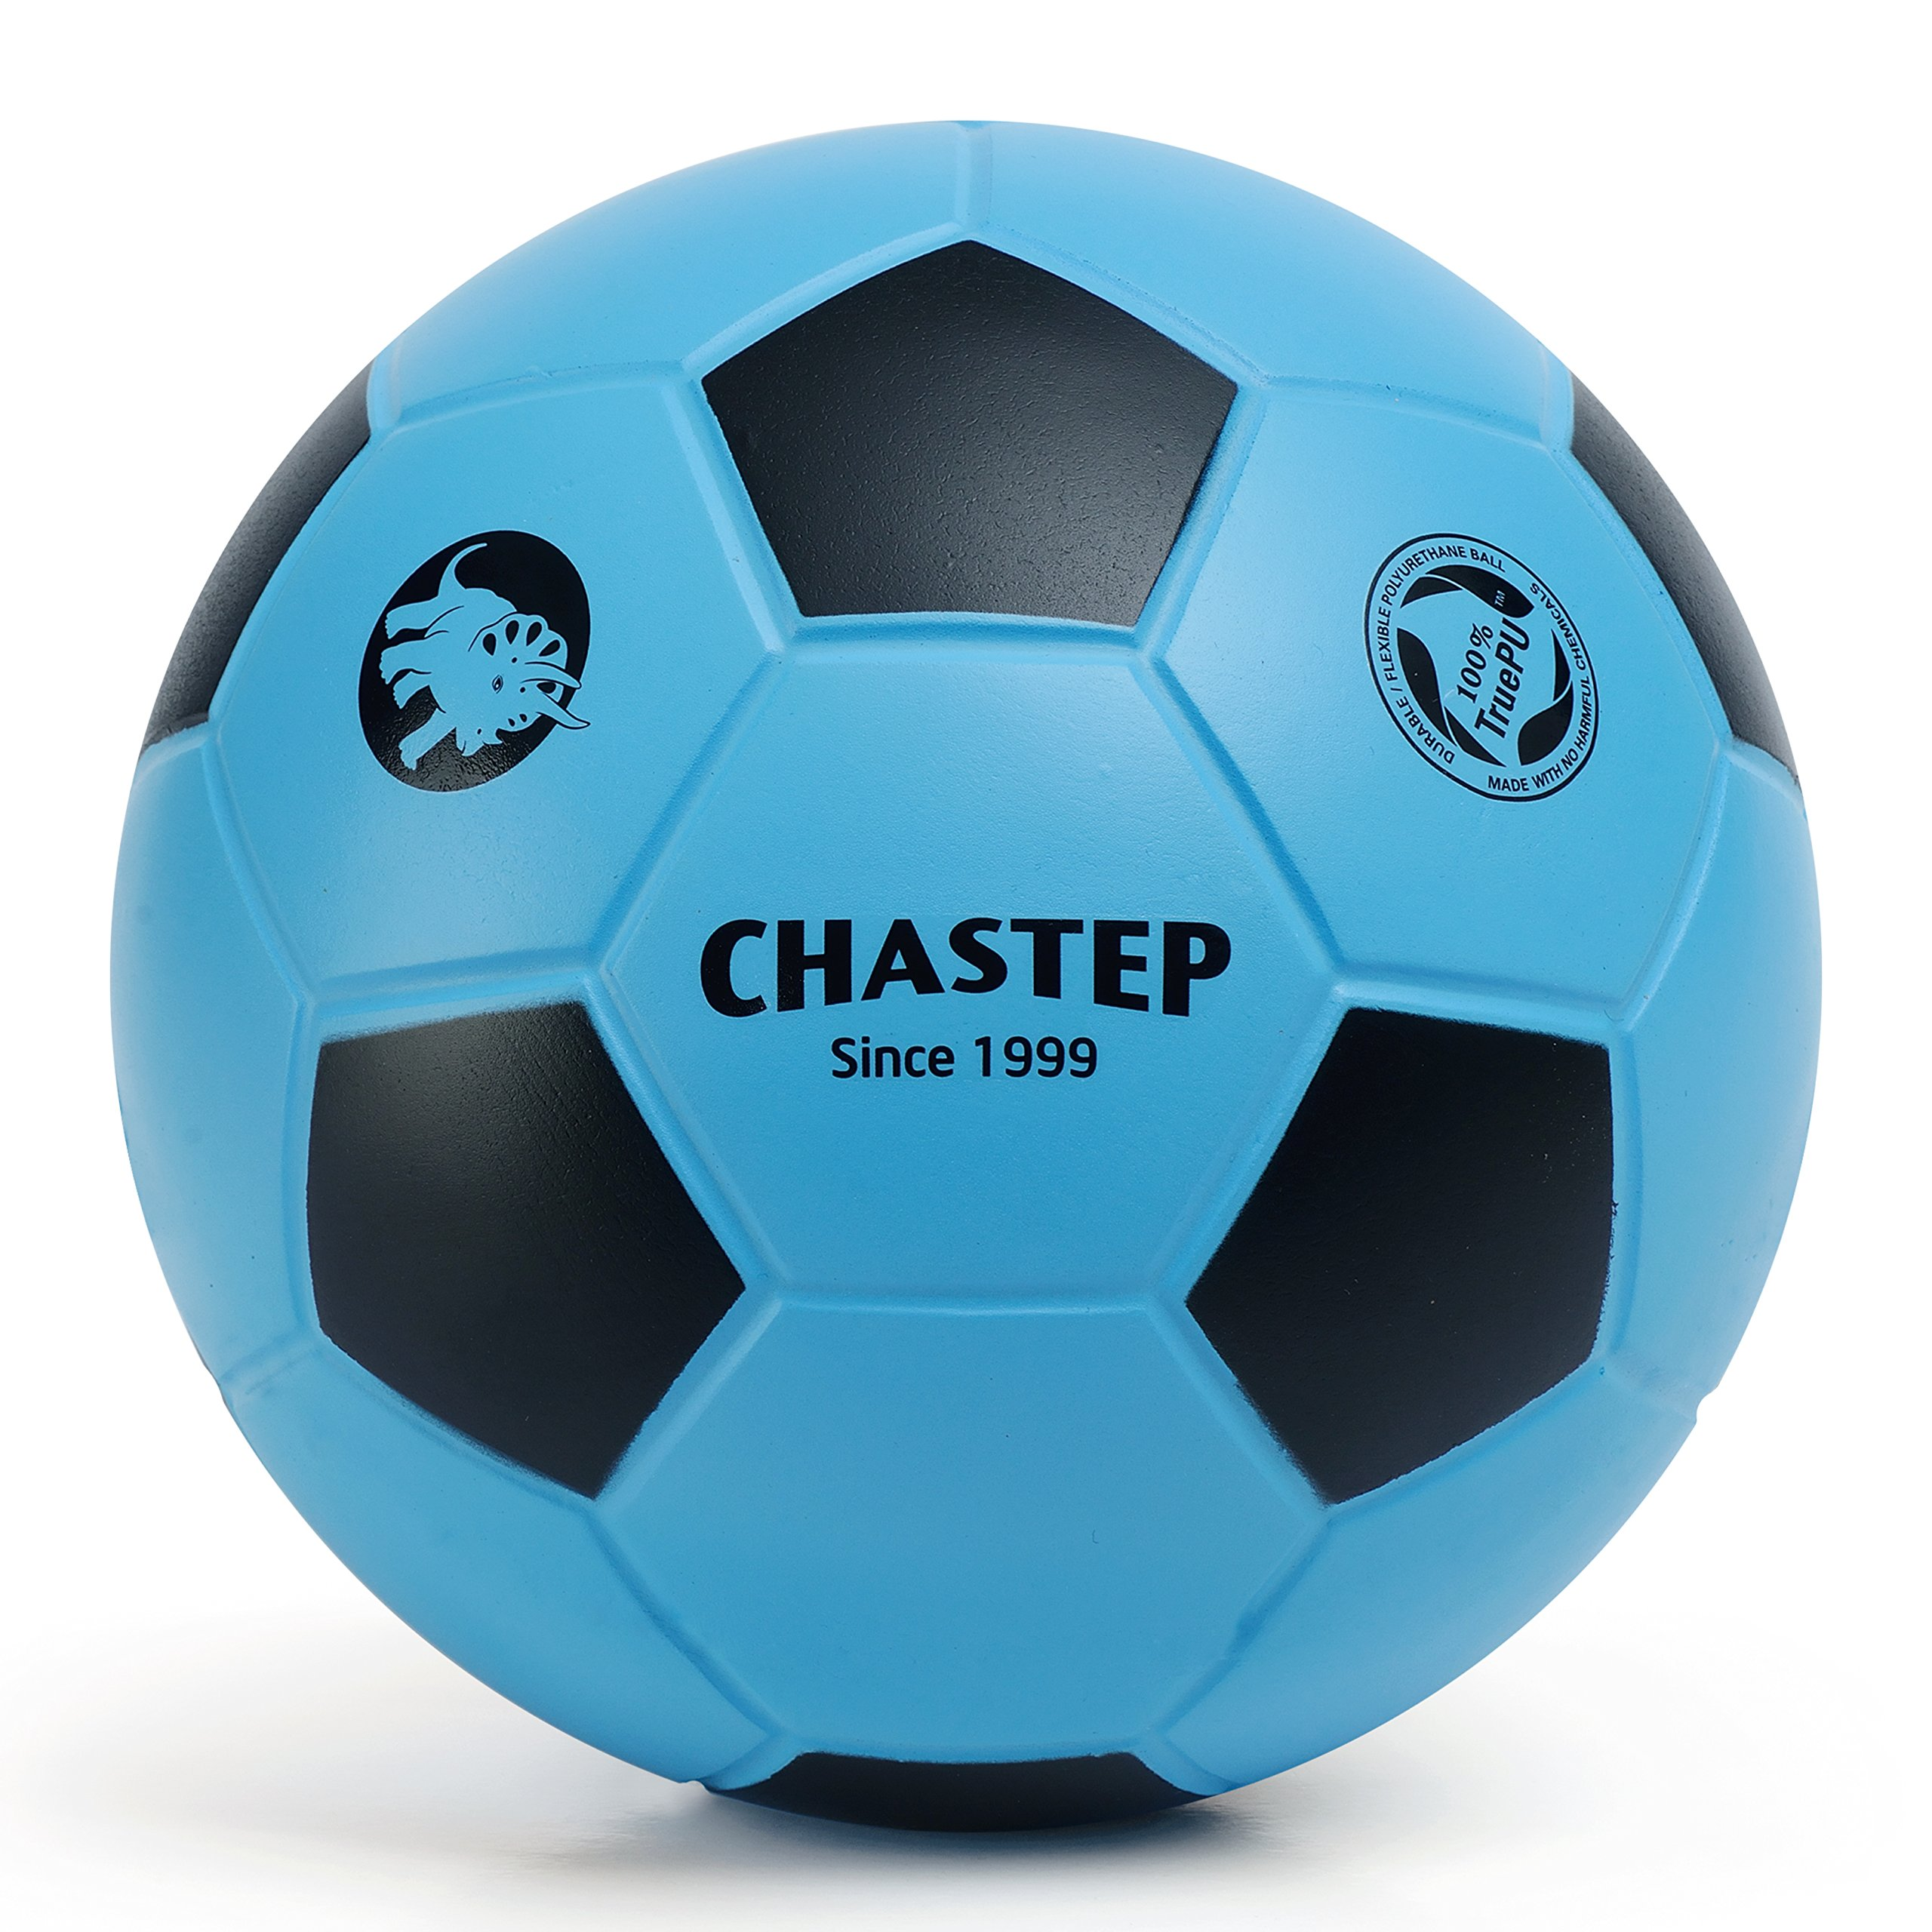 Chastep 8'' Foam Soccer Ball Perfect for Kids or Beginner Play and Excercise Soft Kick & Safe,Blue/Black